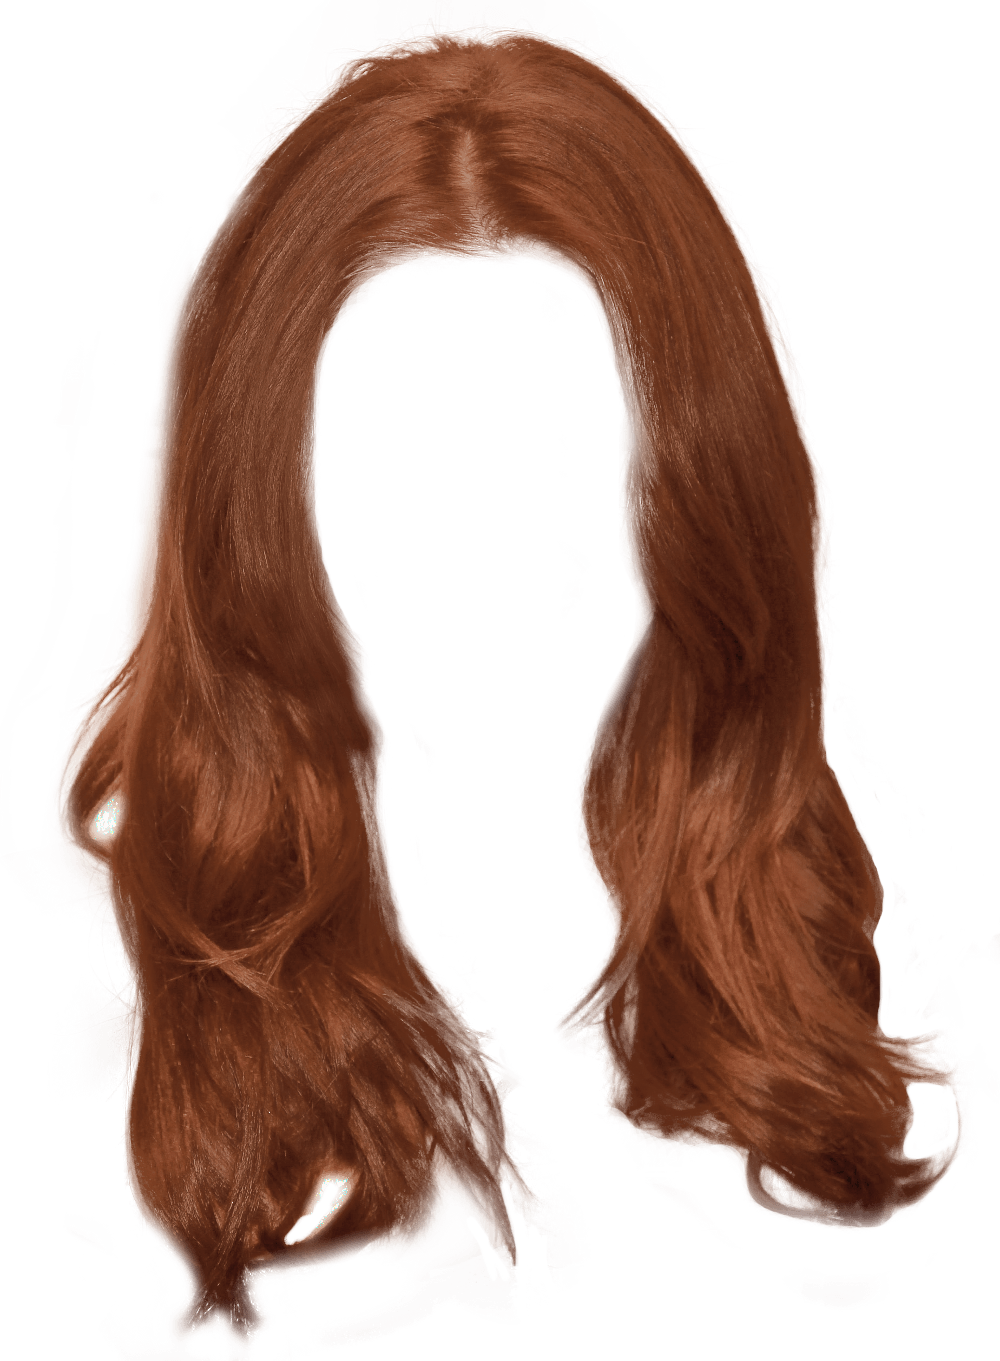 Long hair png. Hq transparent images pluspng